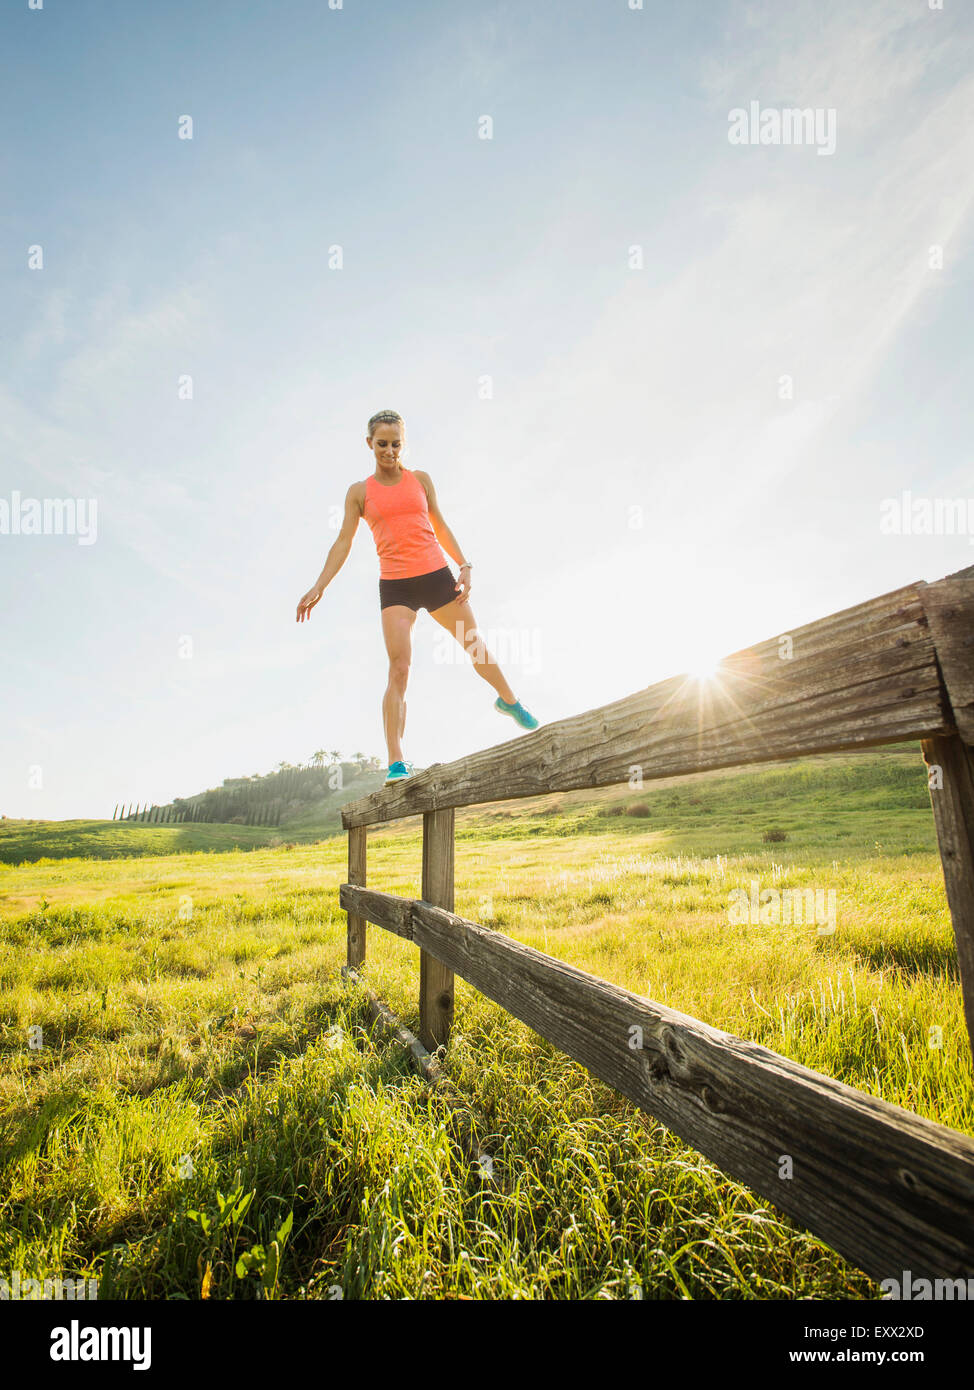 Woman balancing on wooden fence - Stock Image